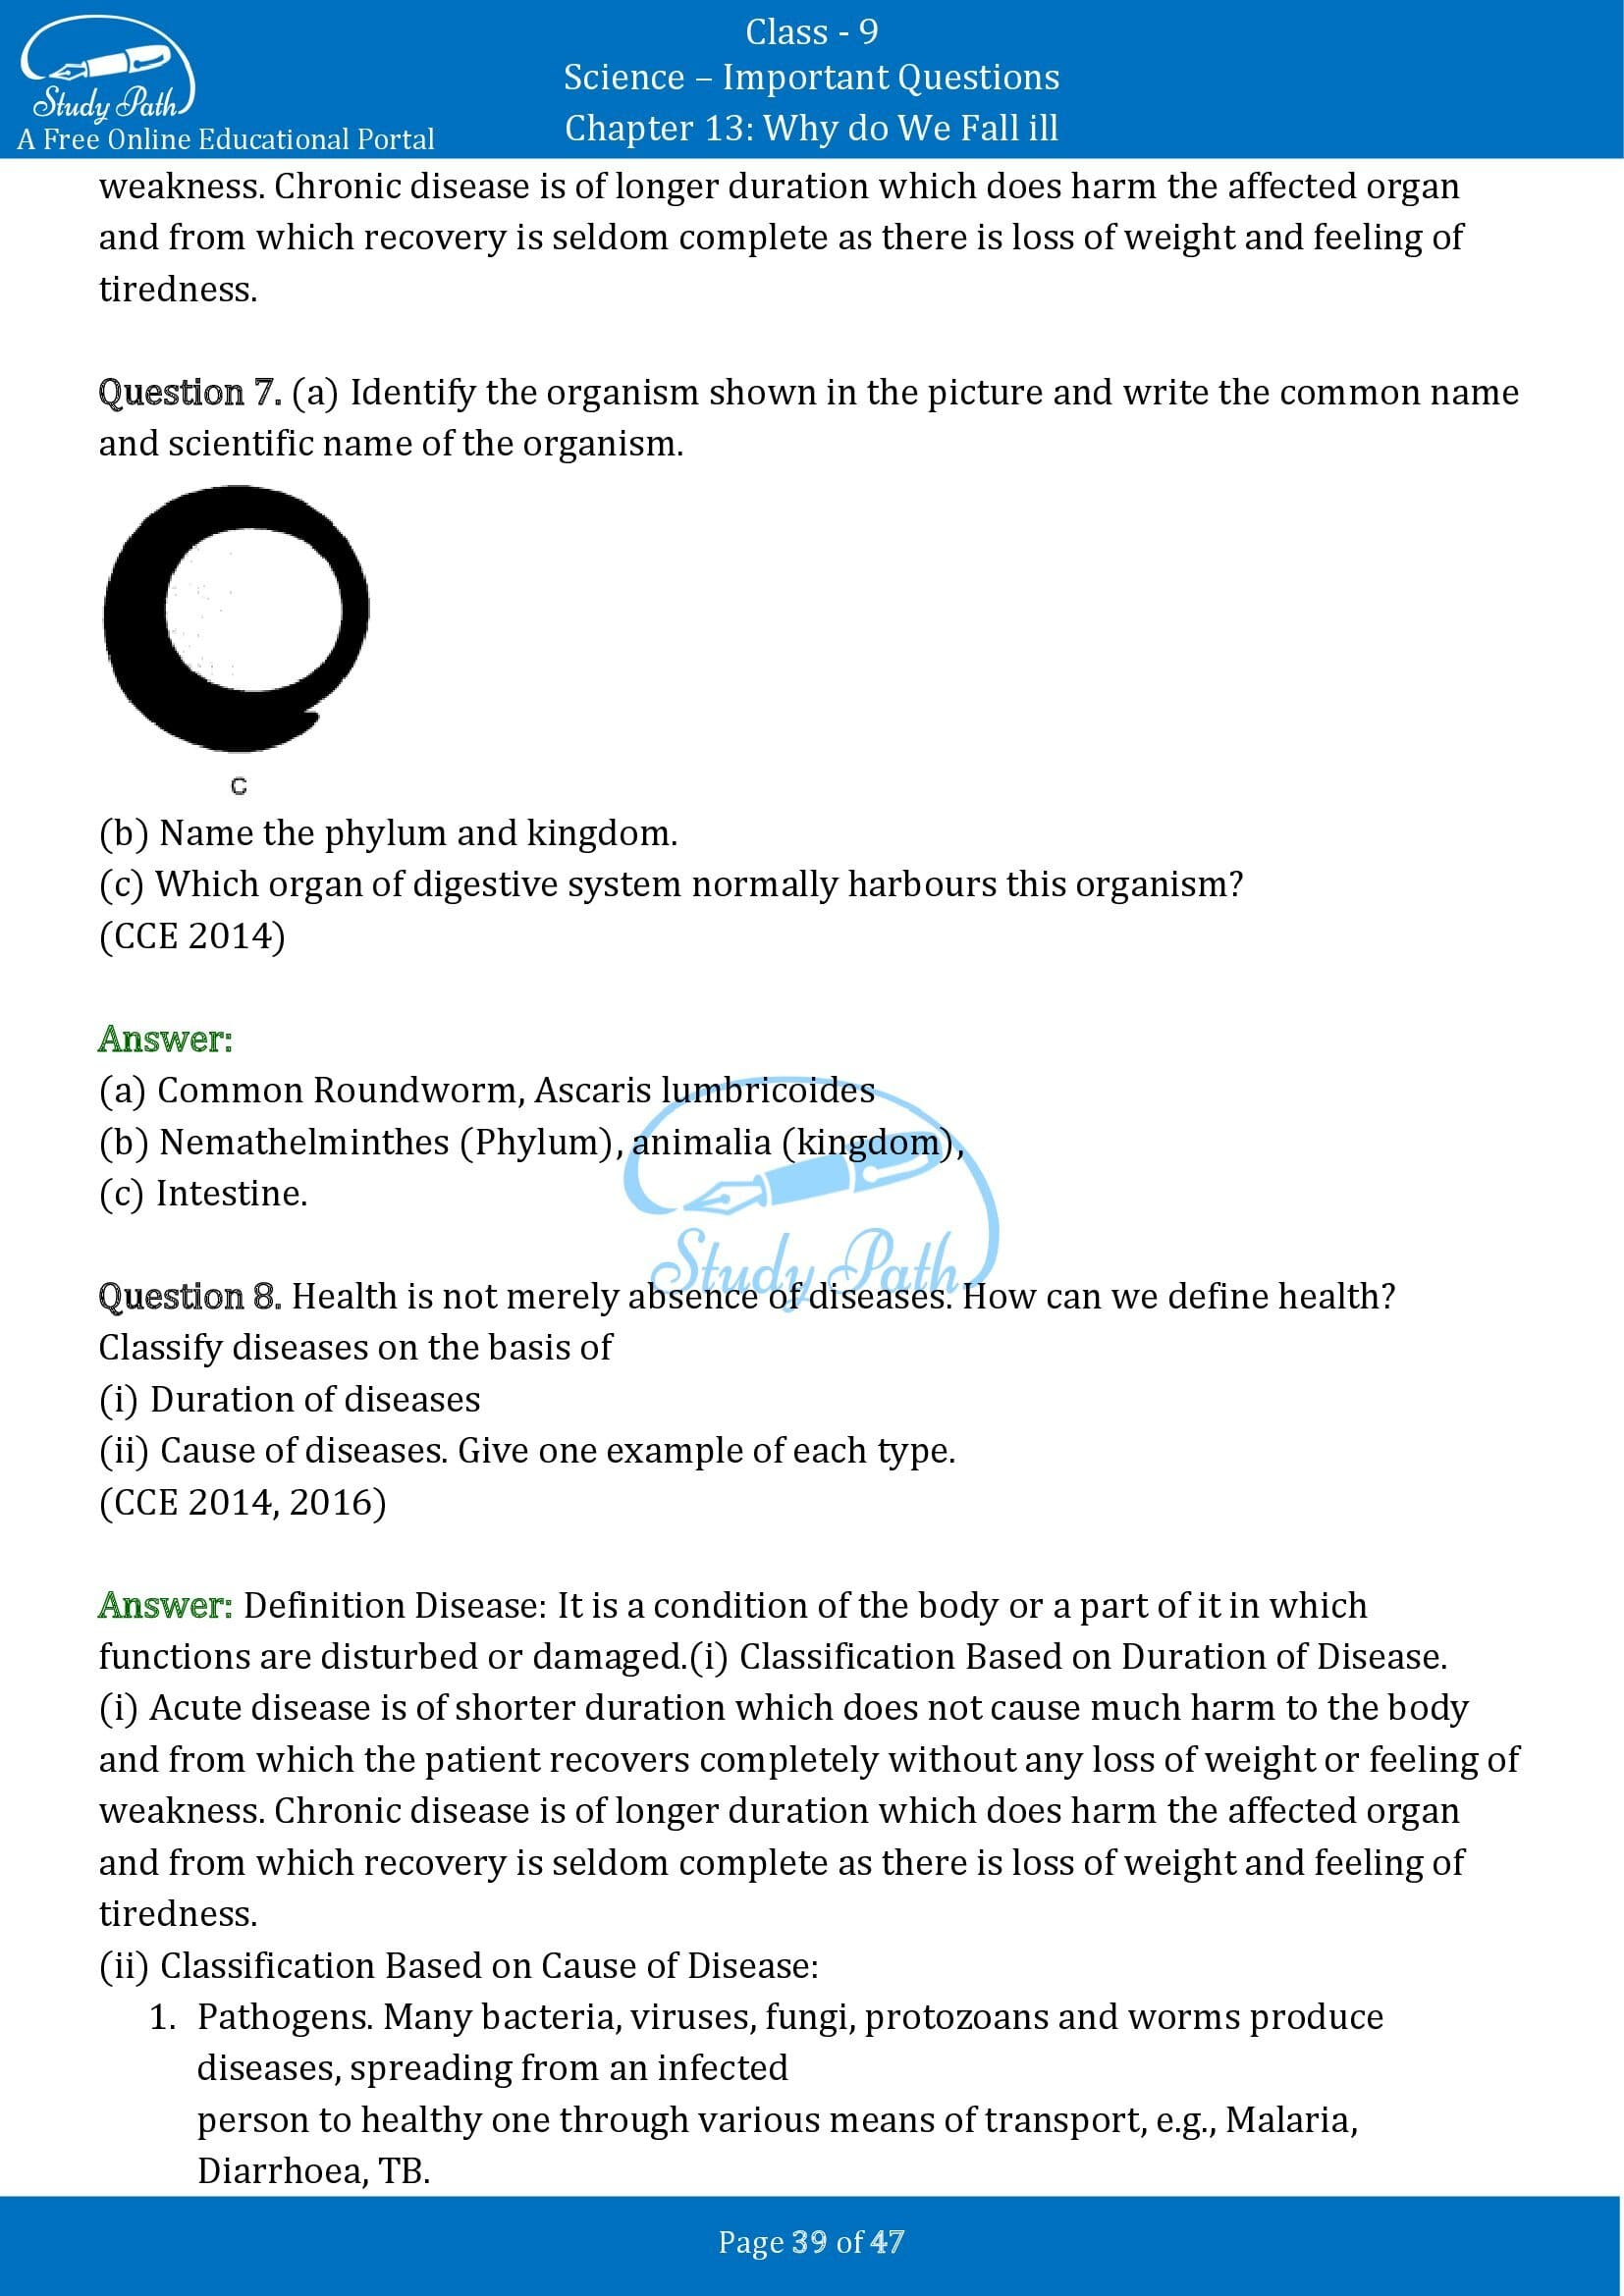 Important Questions for Class 9 Science Chapter 13 Why do We Fall ill 00039